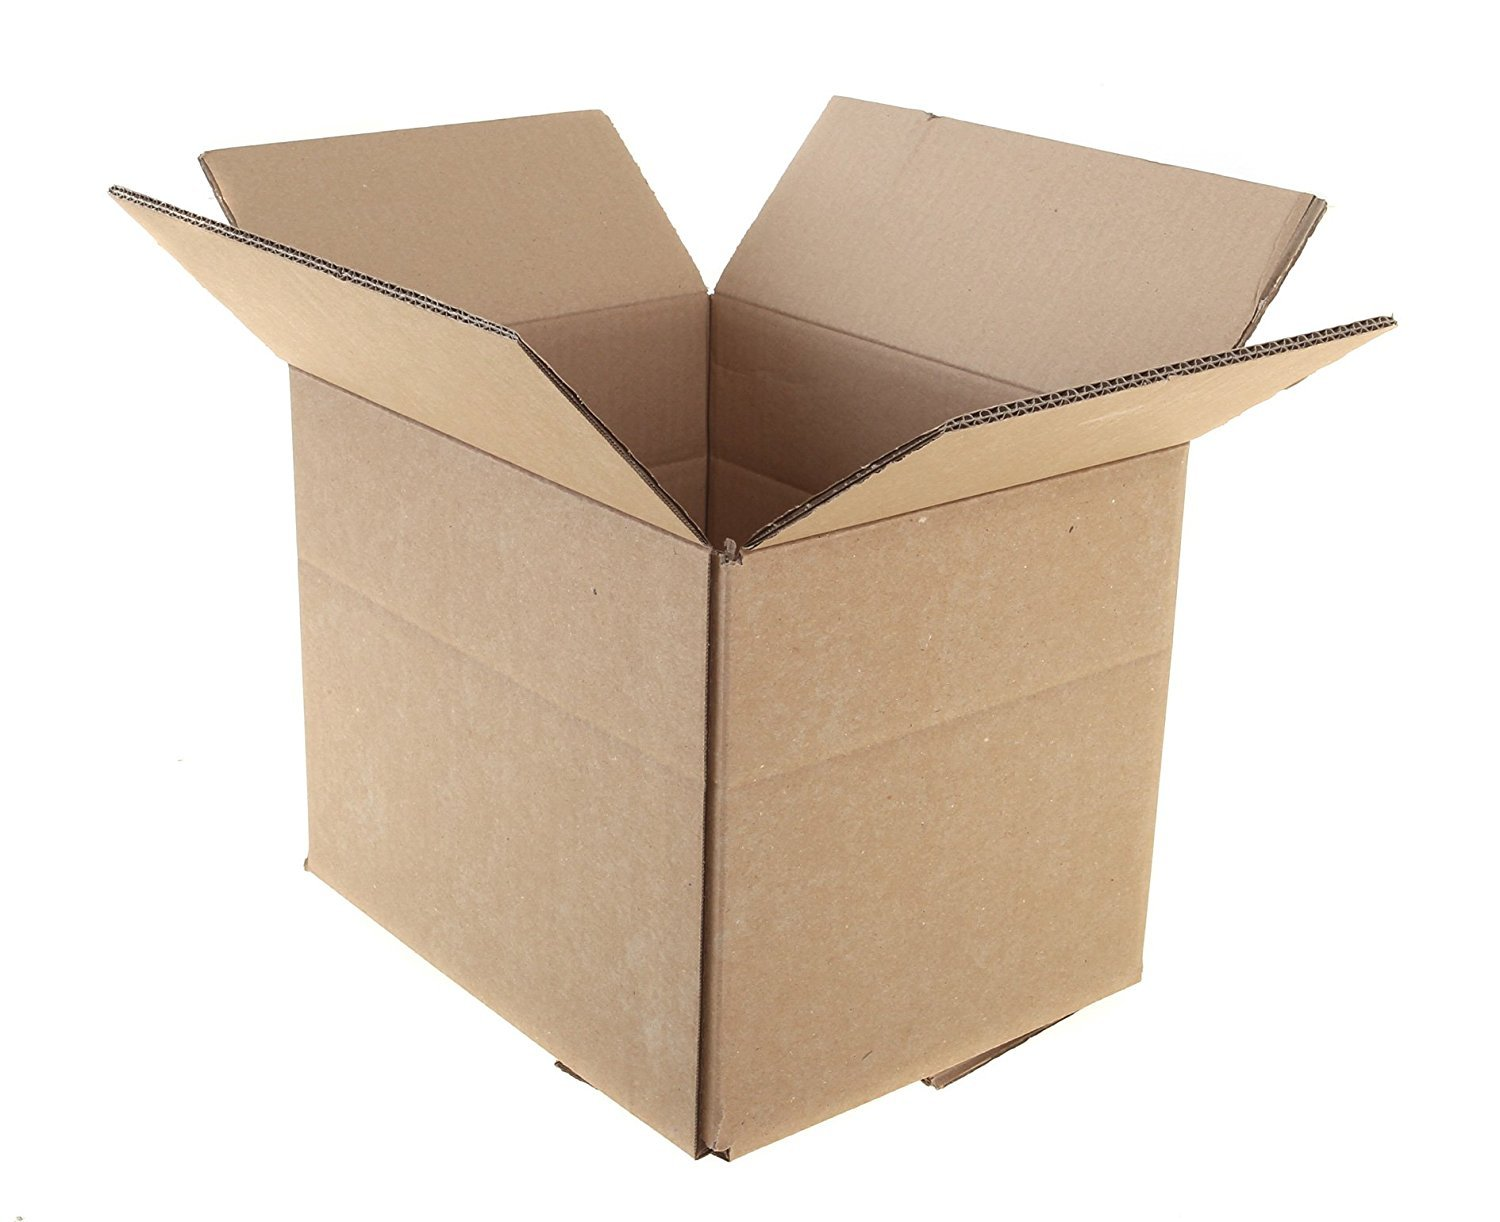 30 x 18 x 18//762mm x 457mm x 457mm**Fast Delivery** 5 x Large Strong Double Wall Removal Cardboard Boxes